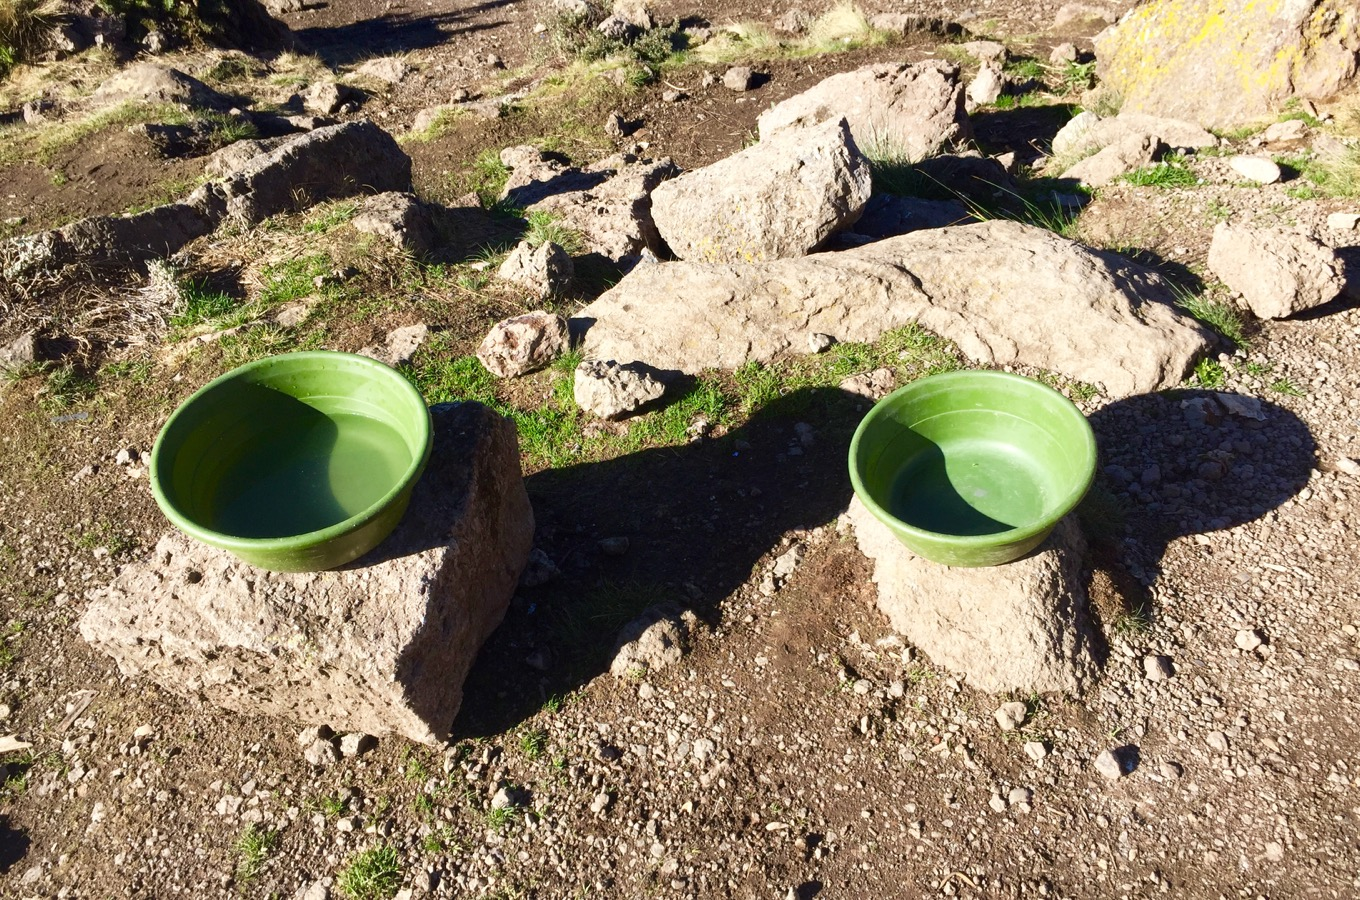 Bowls for washing during climb of Mount Kilimanjaro